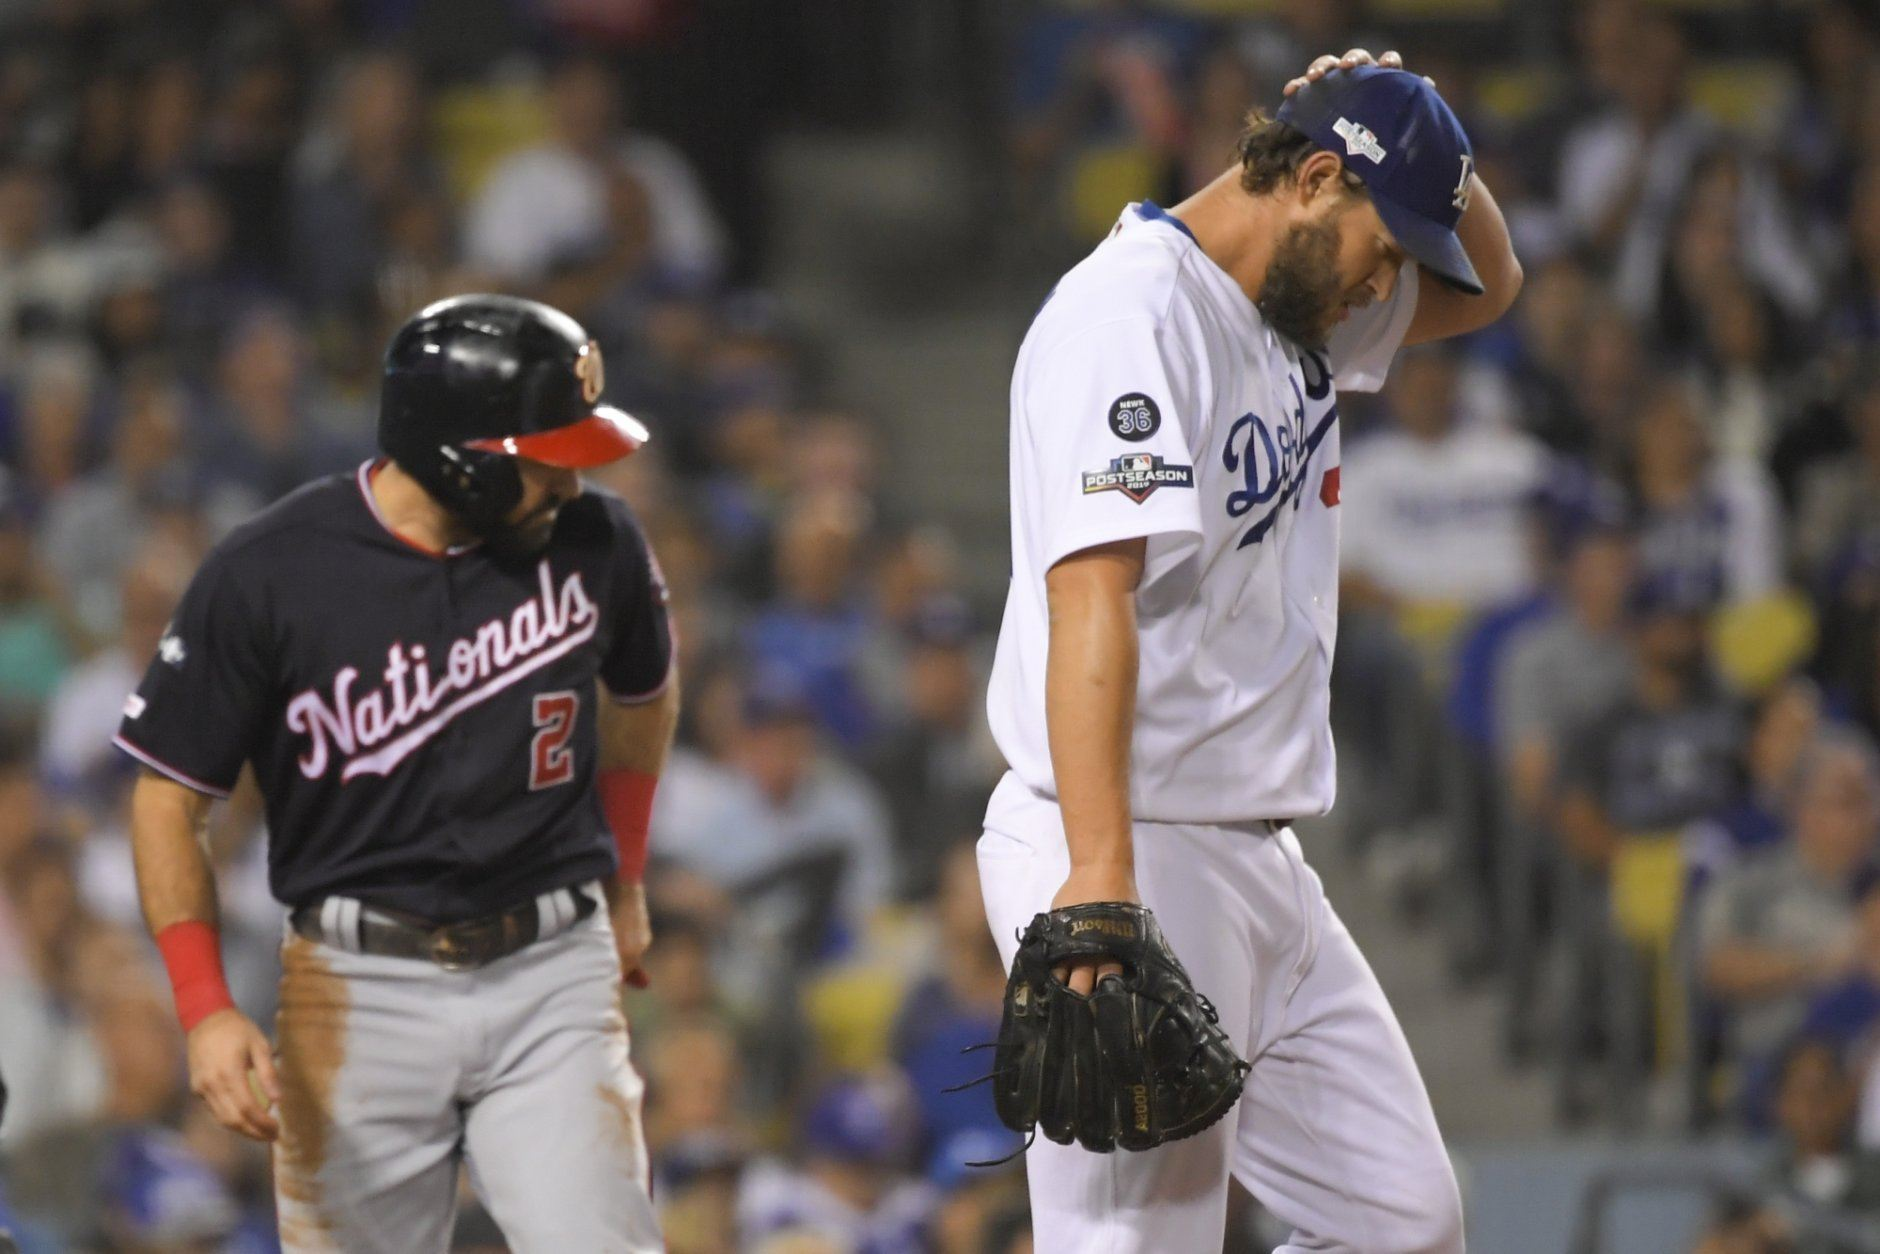 Washington Nationals' Adam Eaton, left, scores past Los Angeles Dodgers starting pitcher Clayton Kershaw on a double by Anthony Rendon during the second inning in Game 2 of baseball's National League Division Series against the Los Angeles Dodgers on Friday, Oct. 4, 2019, in Los Angeles. (AP Photo/Mark J. Terrill)